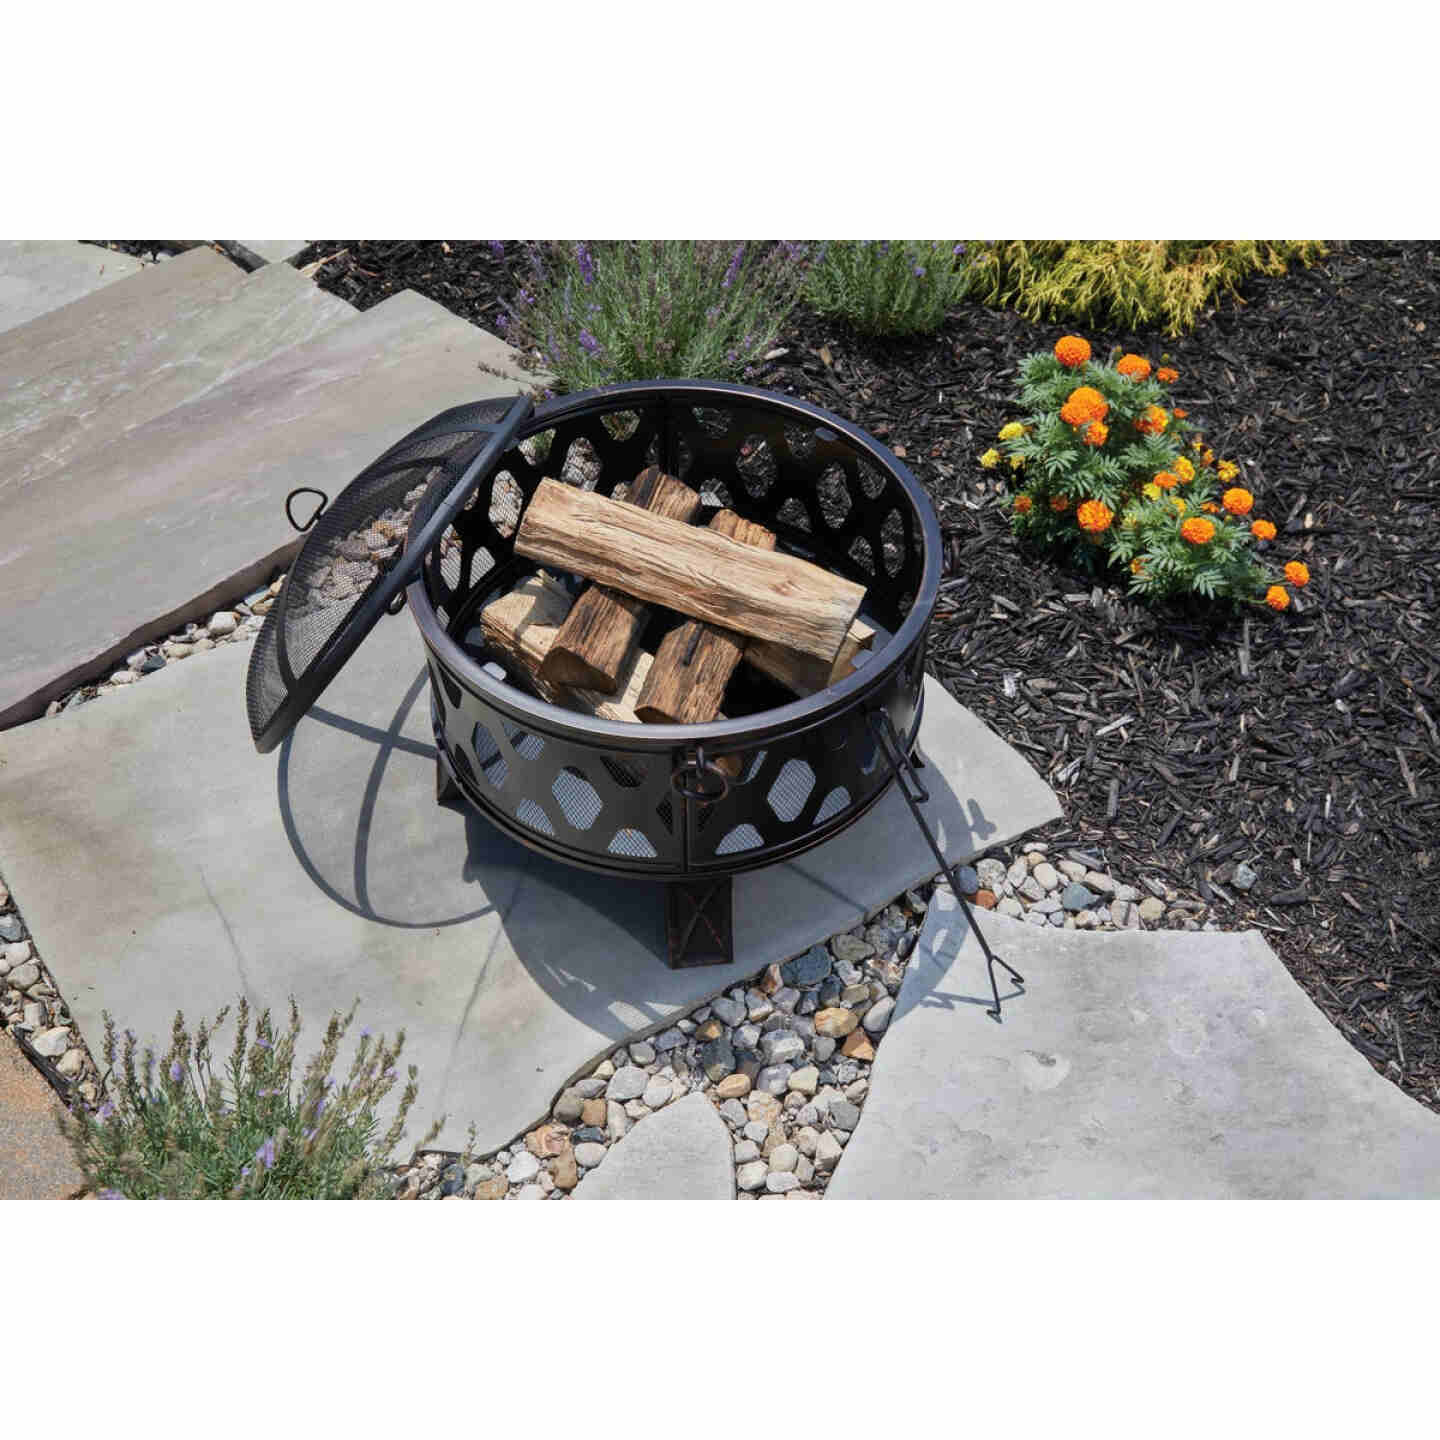 Outdoor Expressions 26 In. Antique Bronze Deep Bowl Steel Firepit Image 3